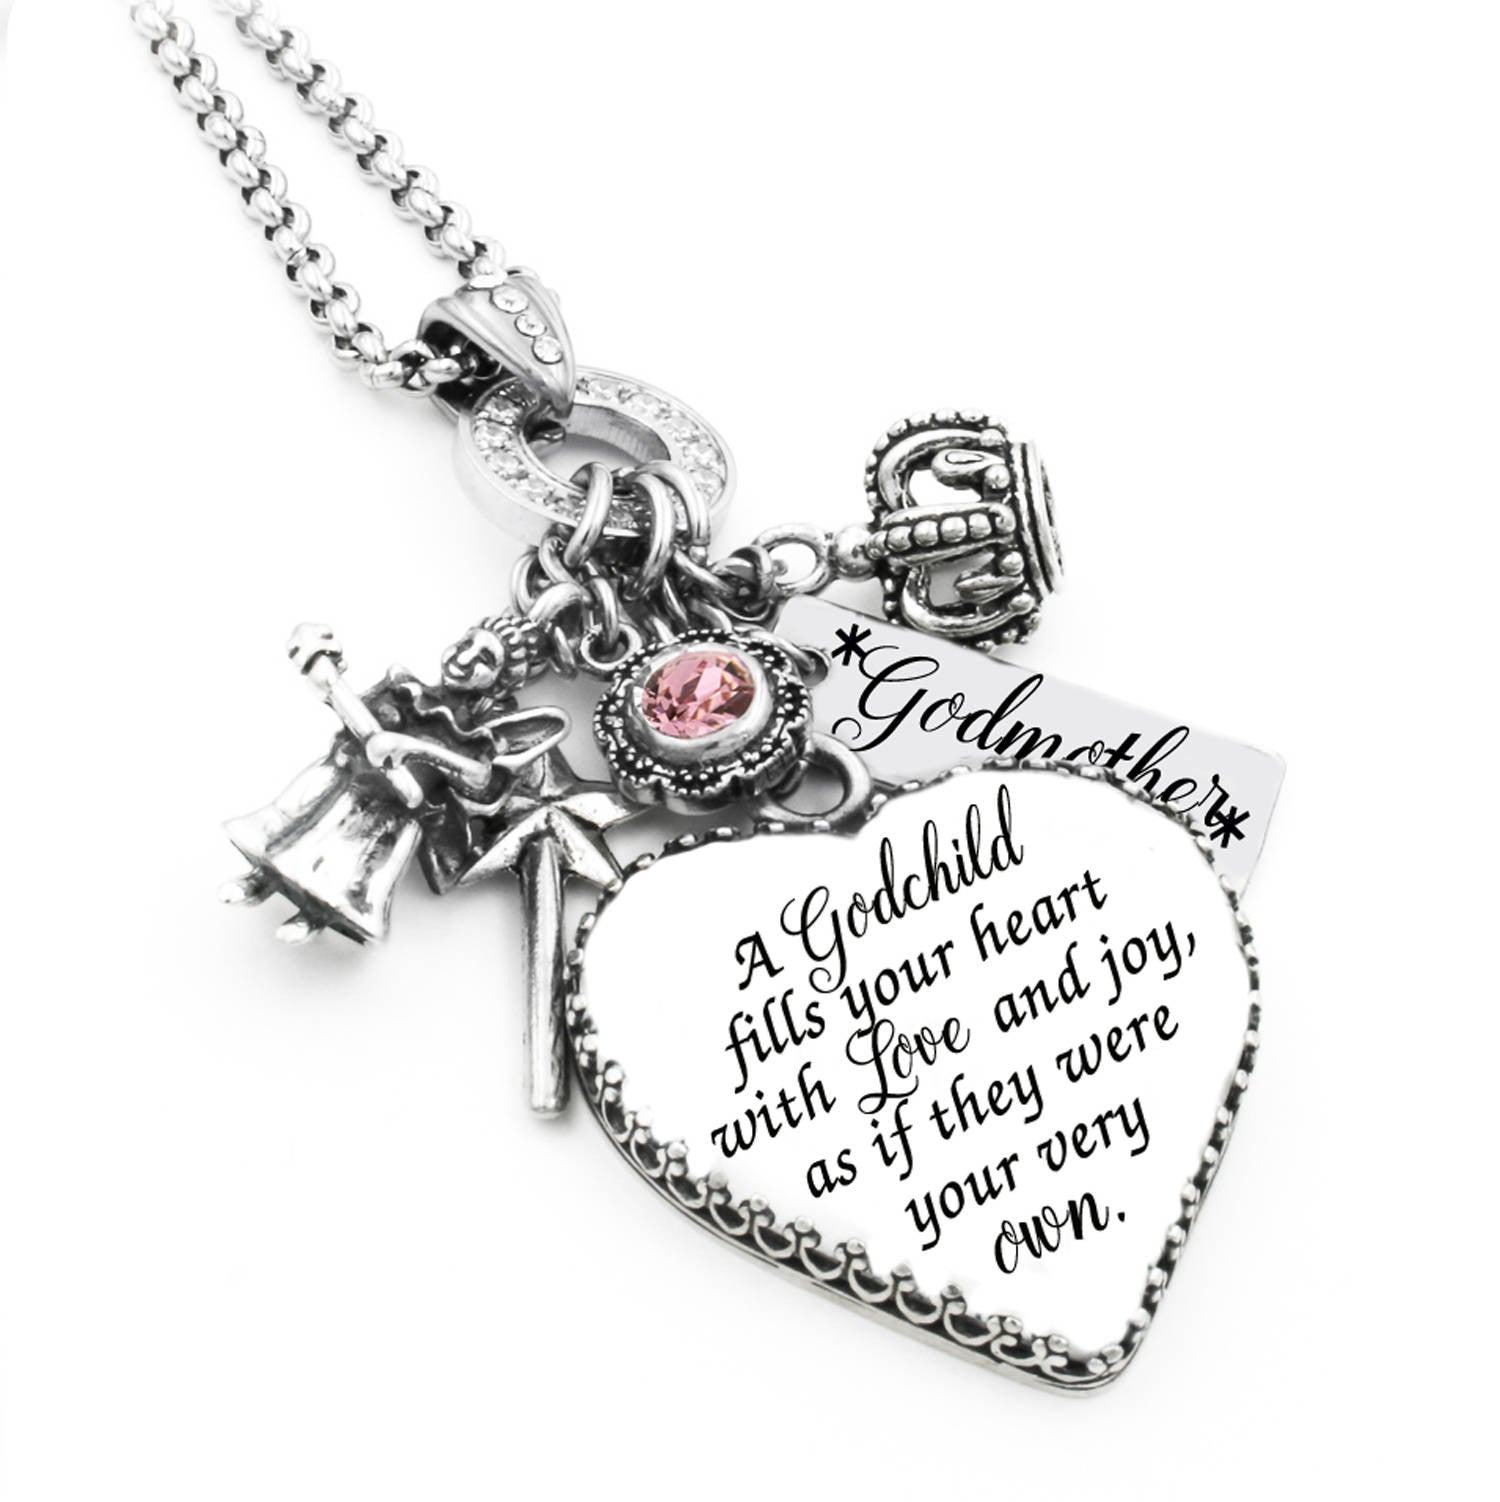 Mothers gifts personalize jewelry with childrens names birthstone godmother necklace aloadofball Gallery